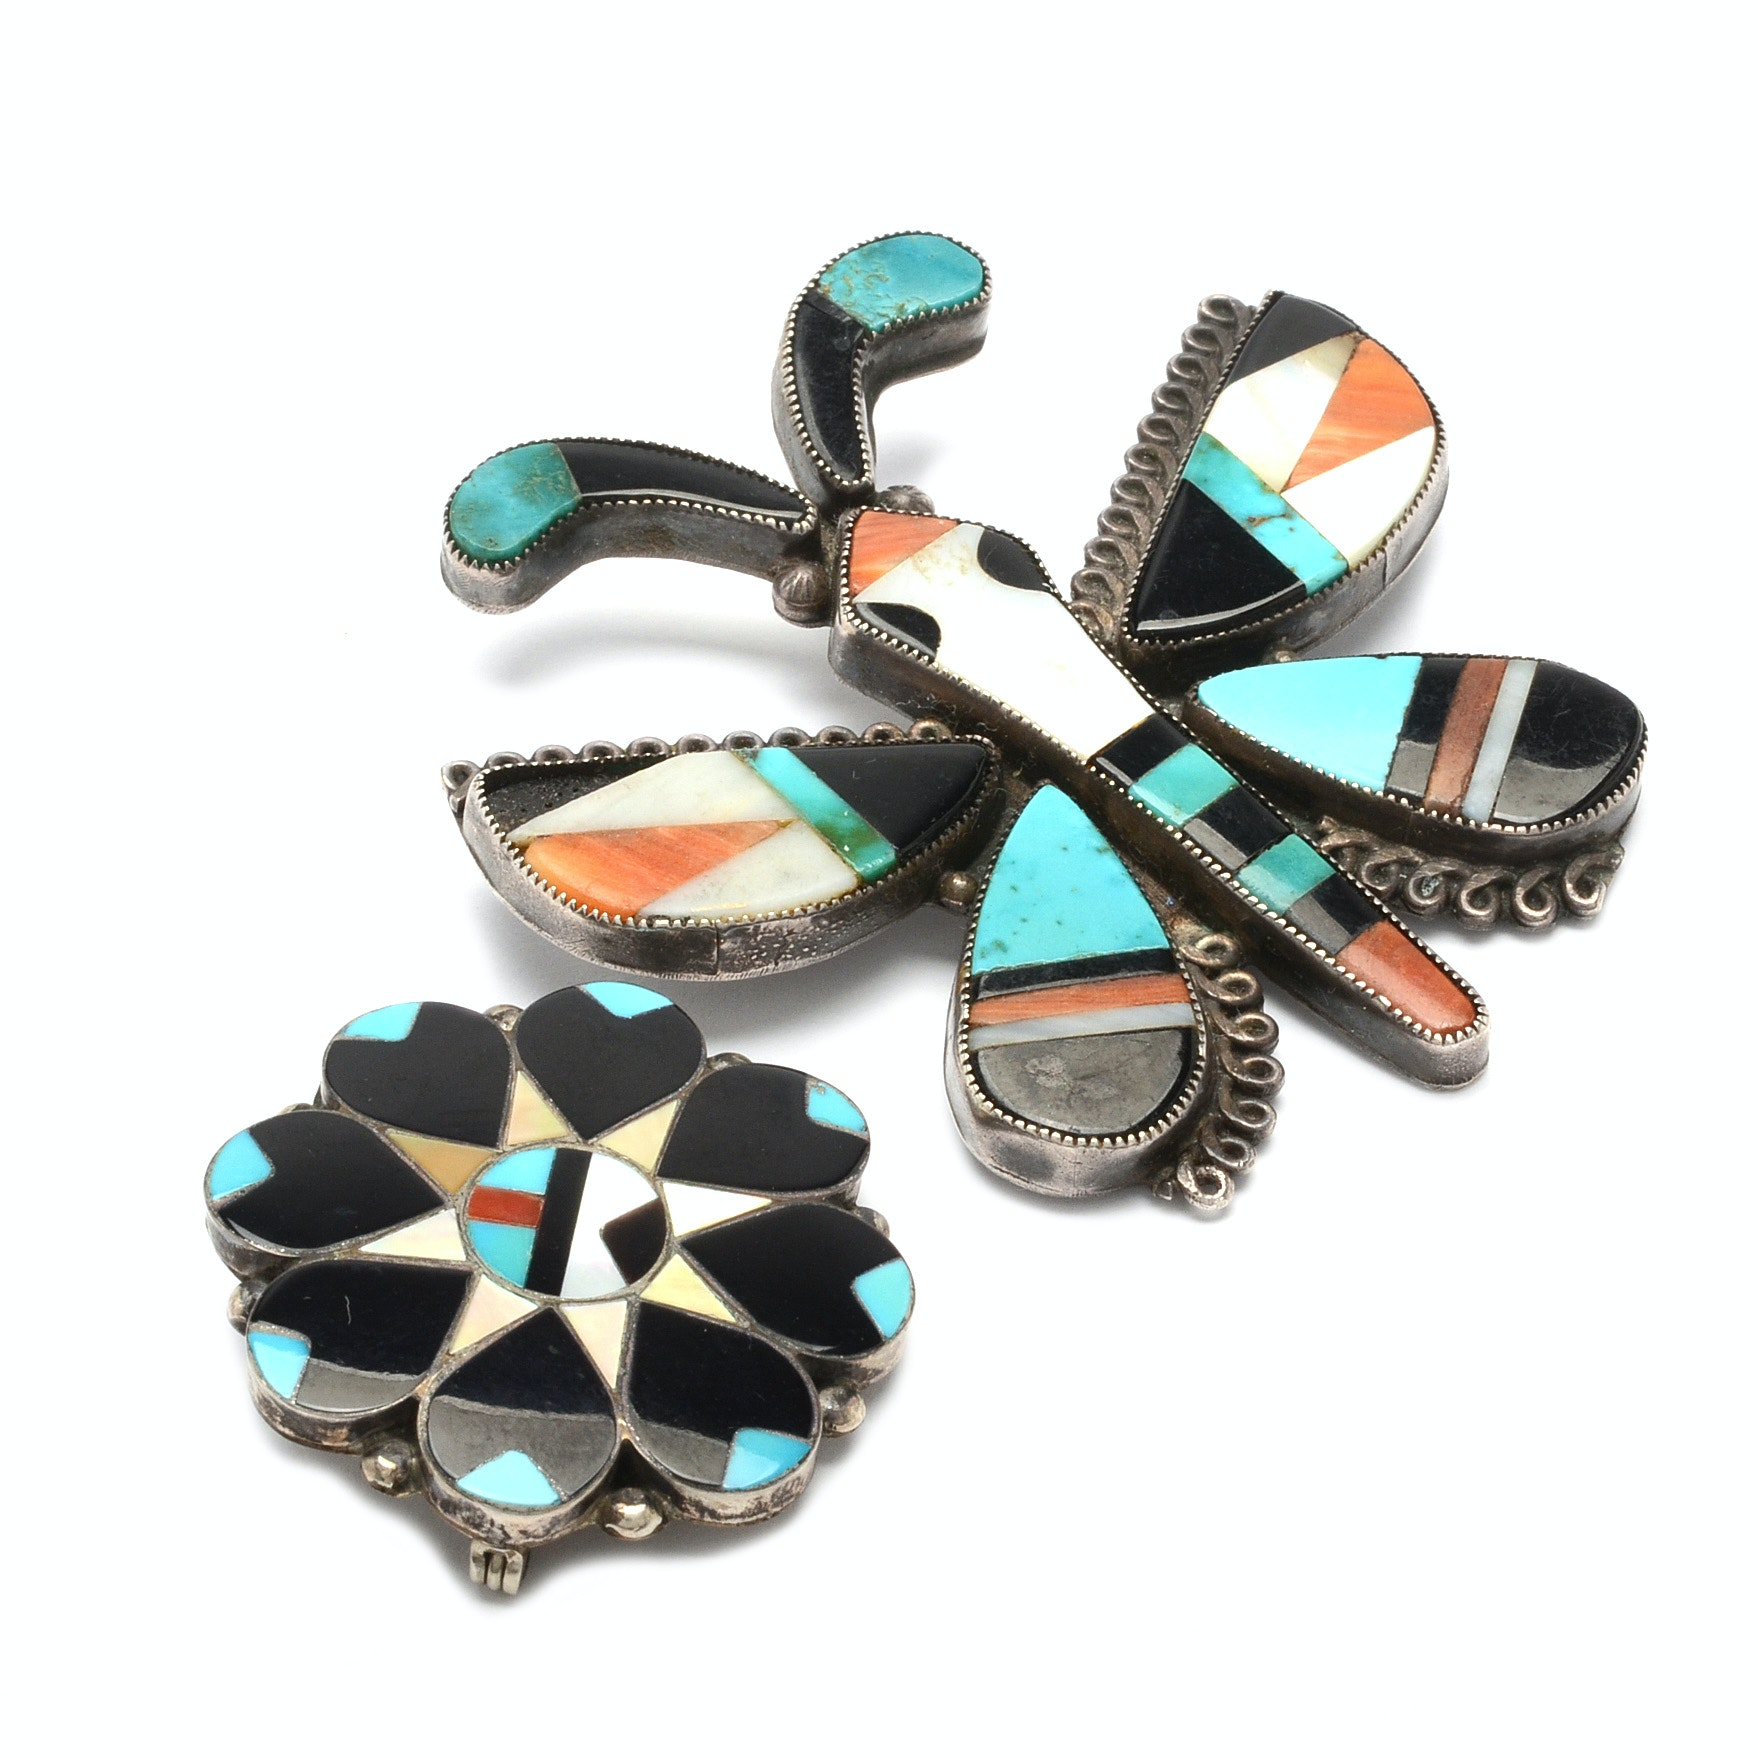 Sterling Silver Southwest Style Brooches With Inlaid Gemstones